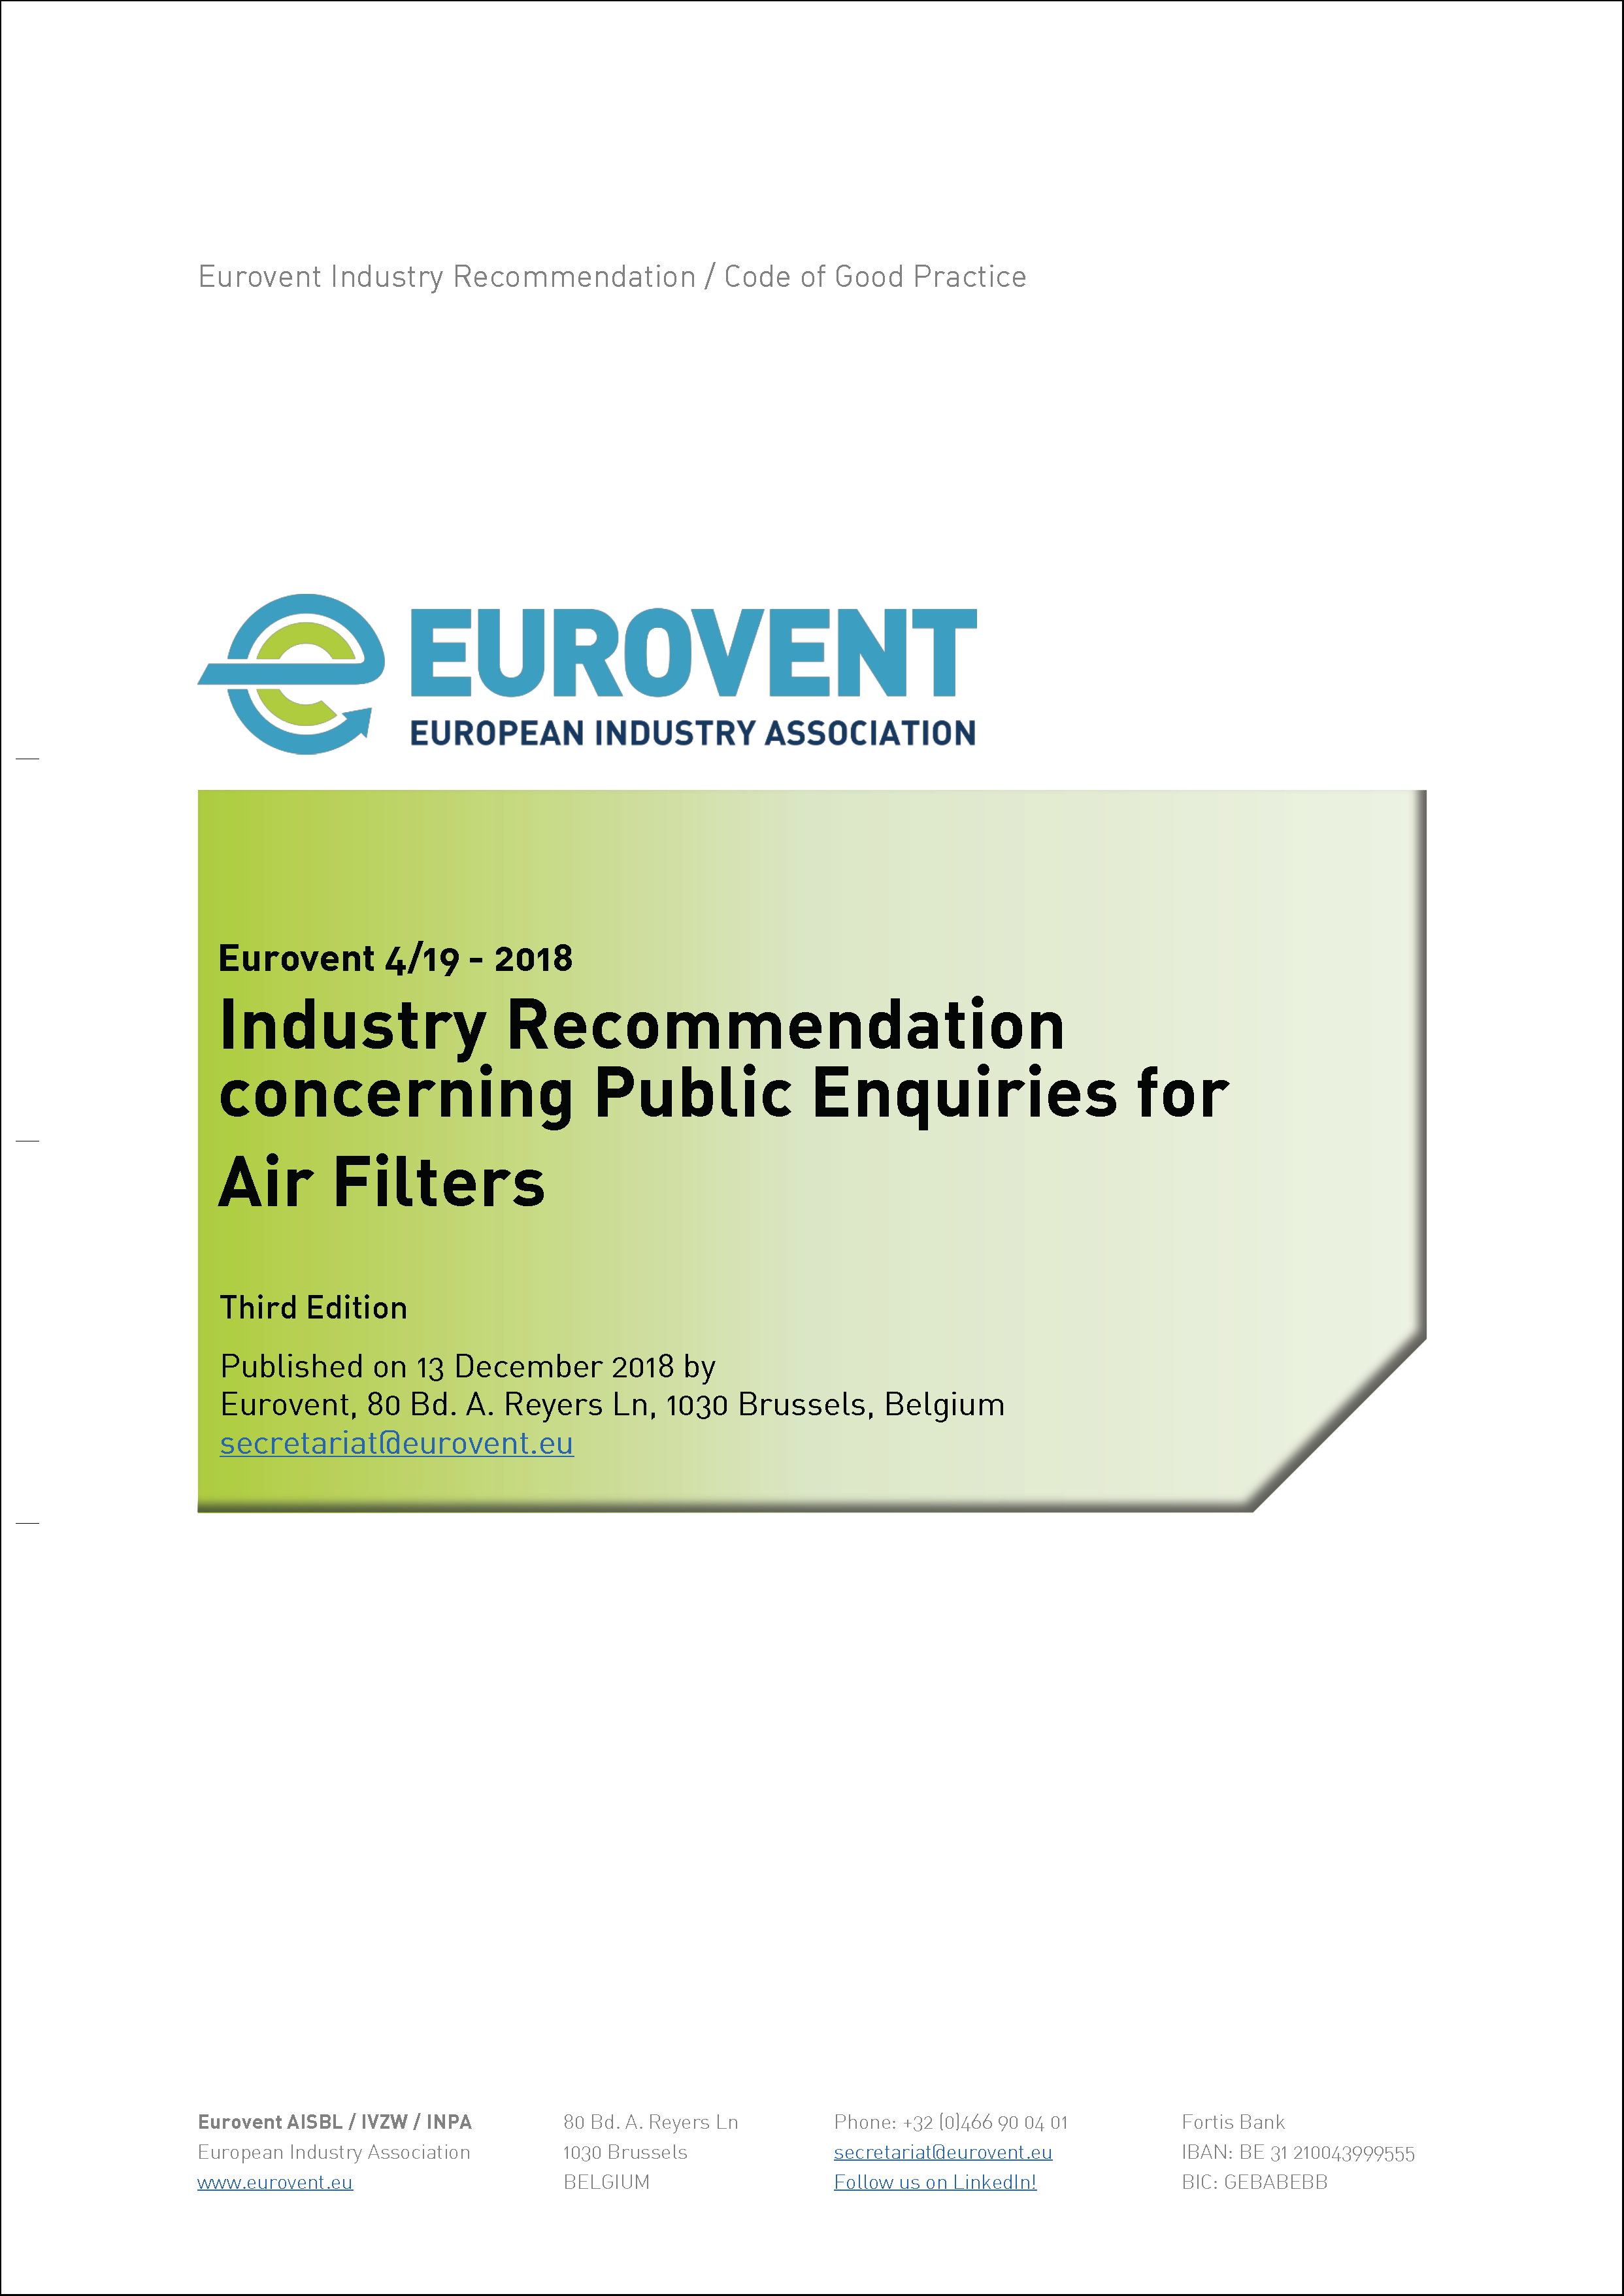 2018 - Eurovent 4/19 - 2018: Industry Recommendation concerning Public Enquiries for Air Filters